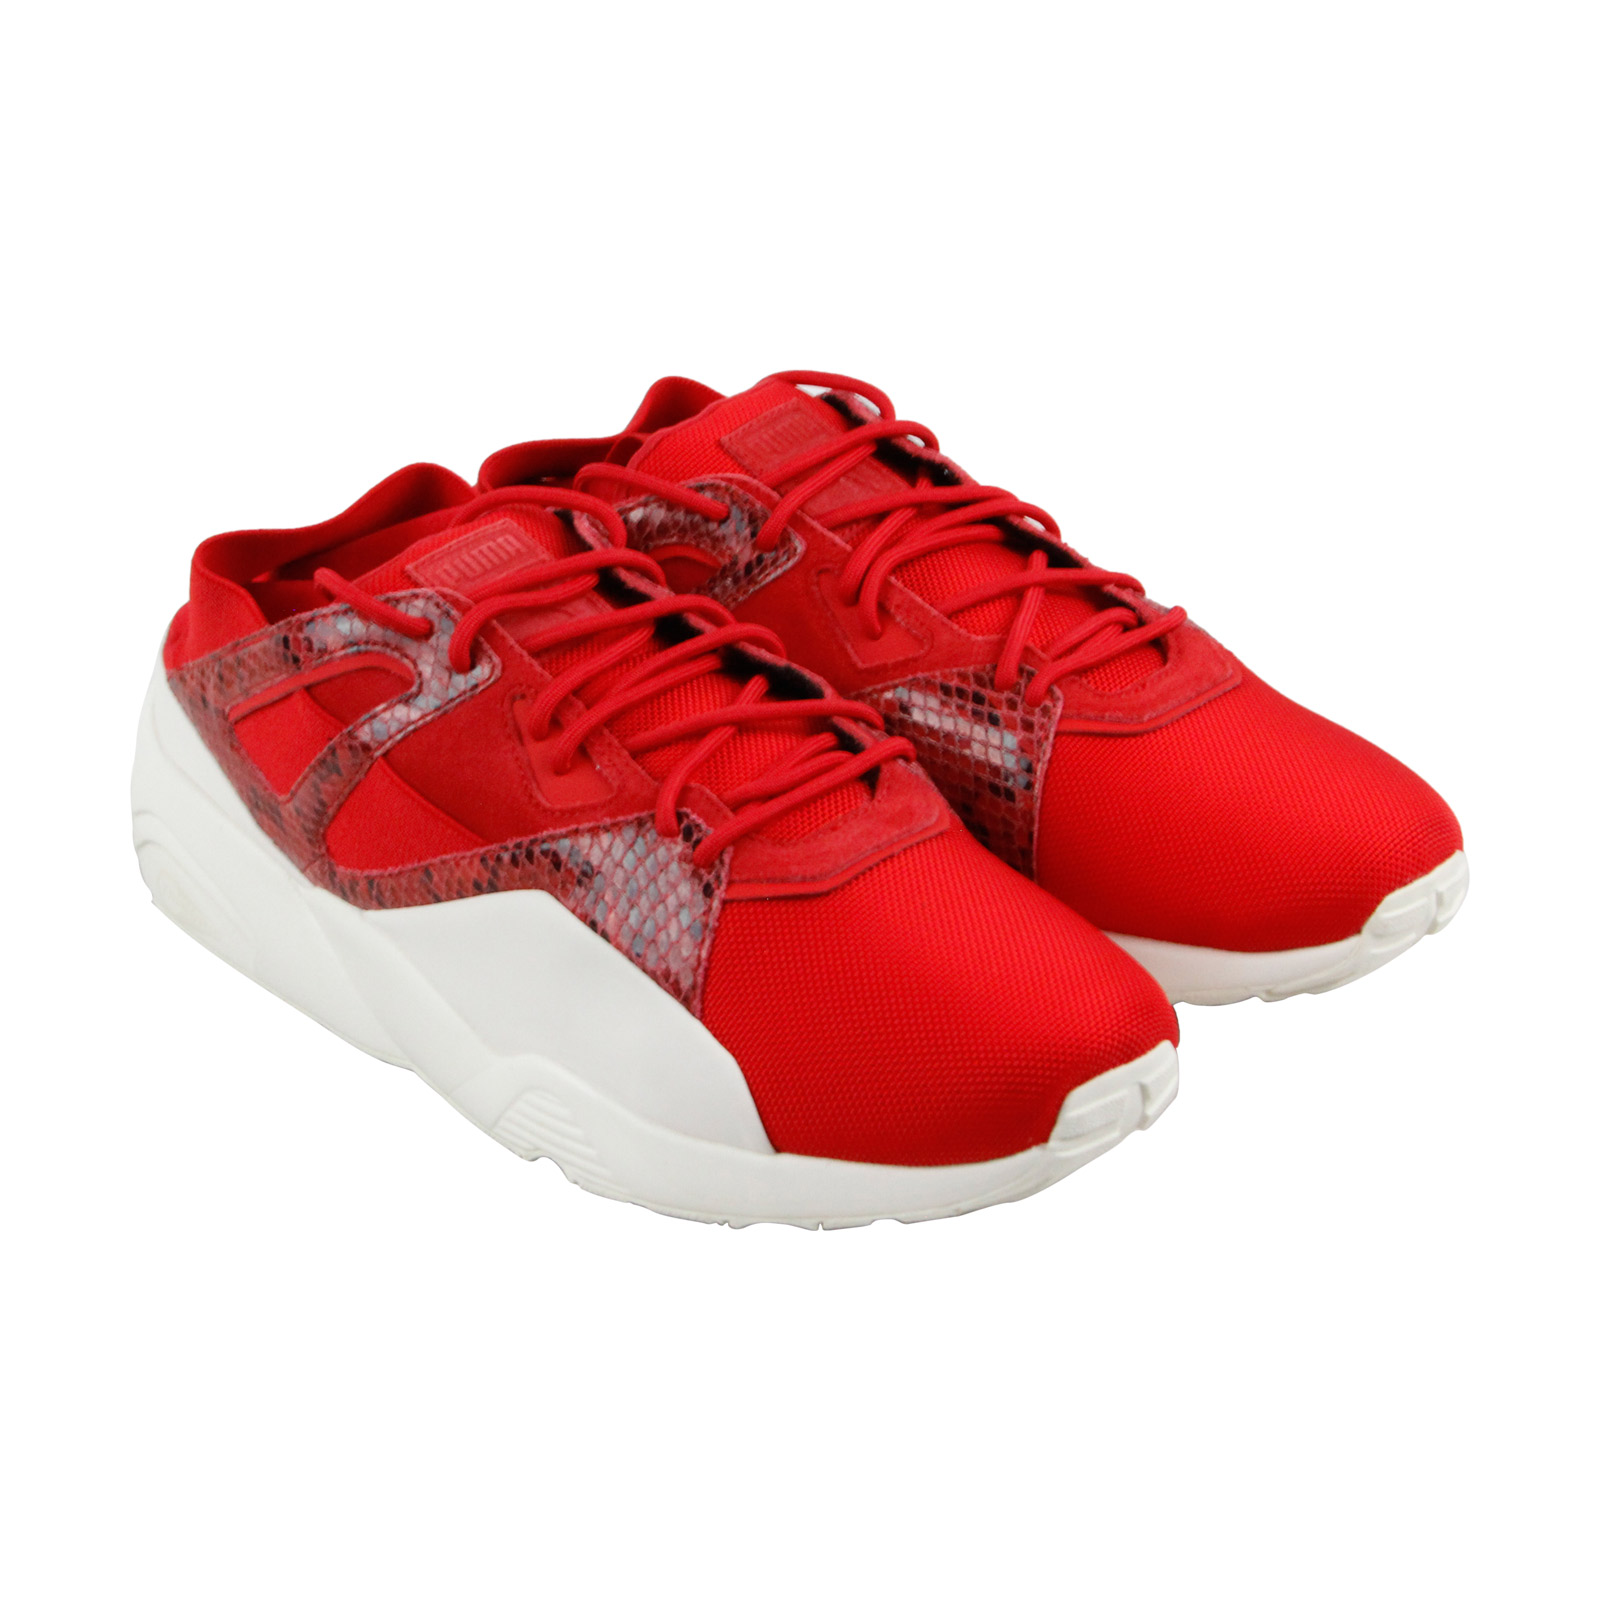 Puma B.O.G Sock Snake Mens Red Mesh Athletic Lace Up Training Shoes Great discount